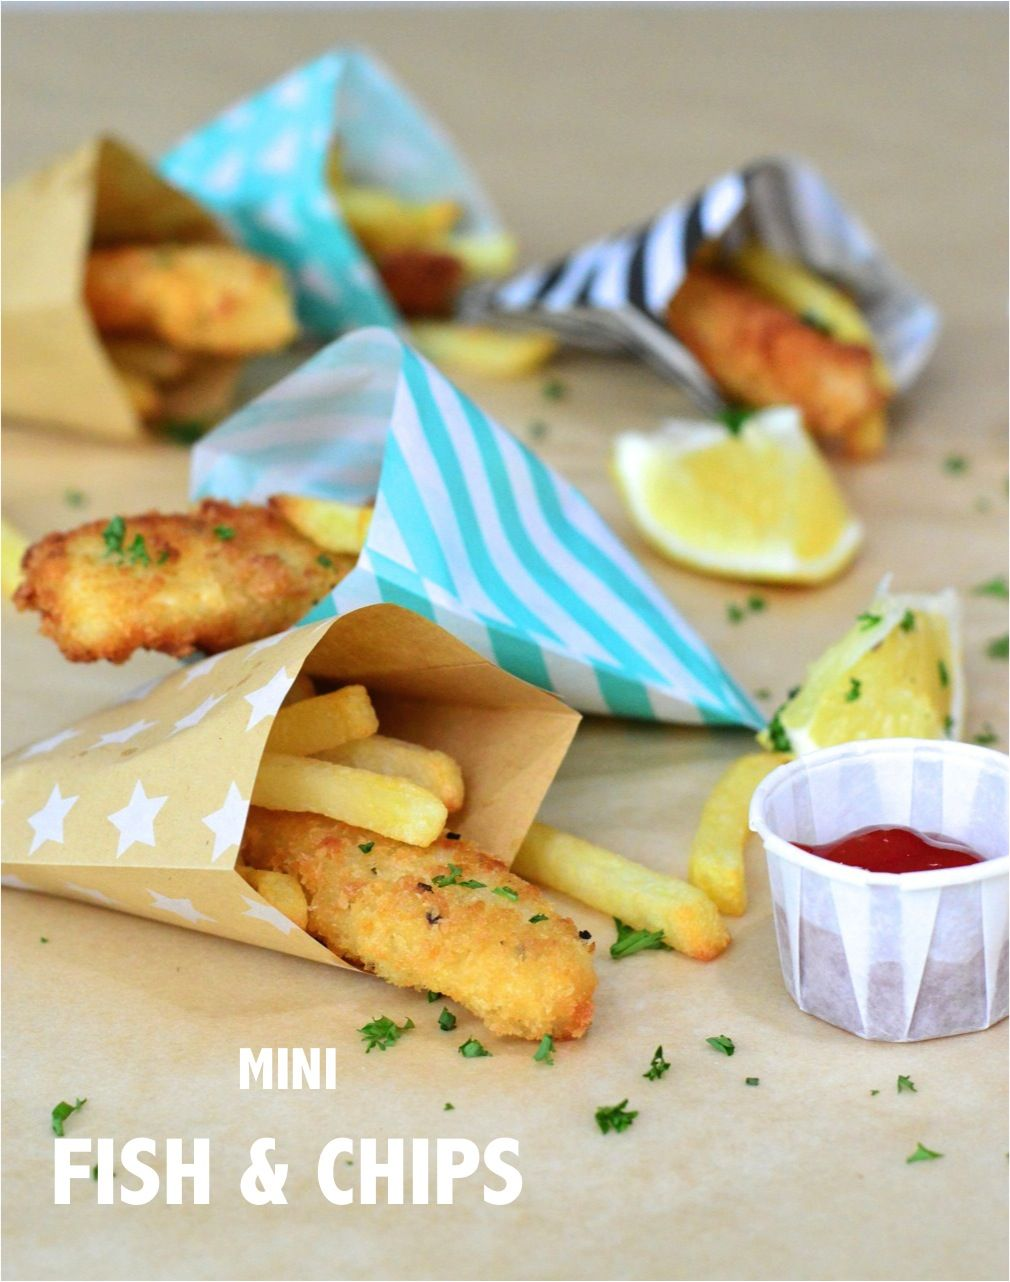 Mini Fish Chips Served In Colourful Paper Party Bags For A Fun Kids